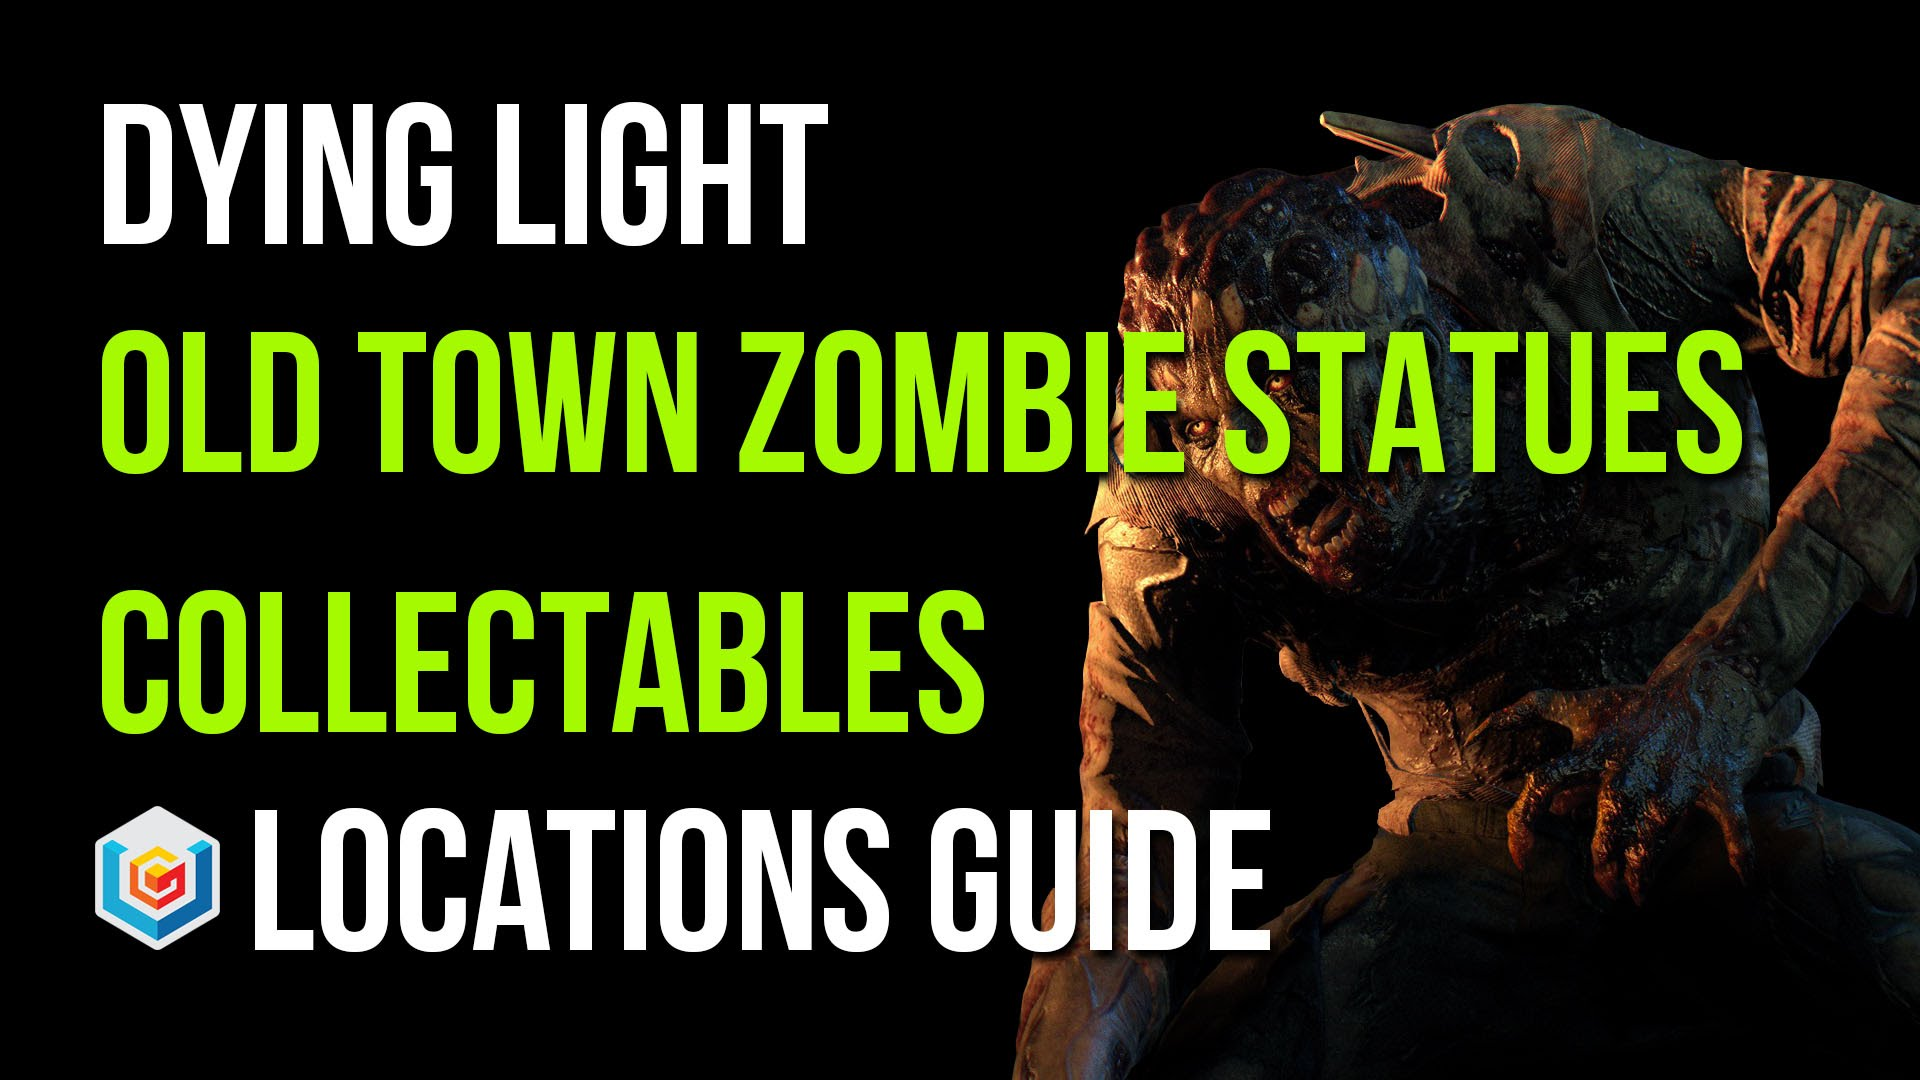 Dying Light Old Town Zombie Statues Locations Guide   VGFAQ